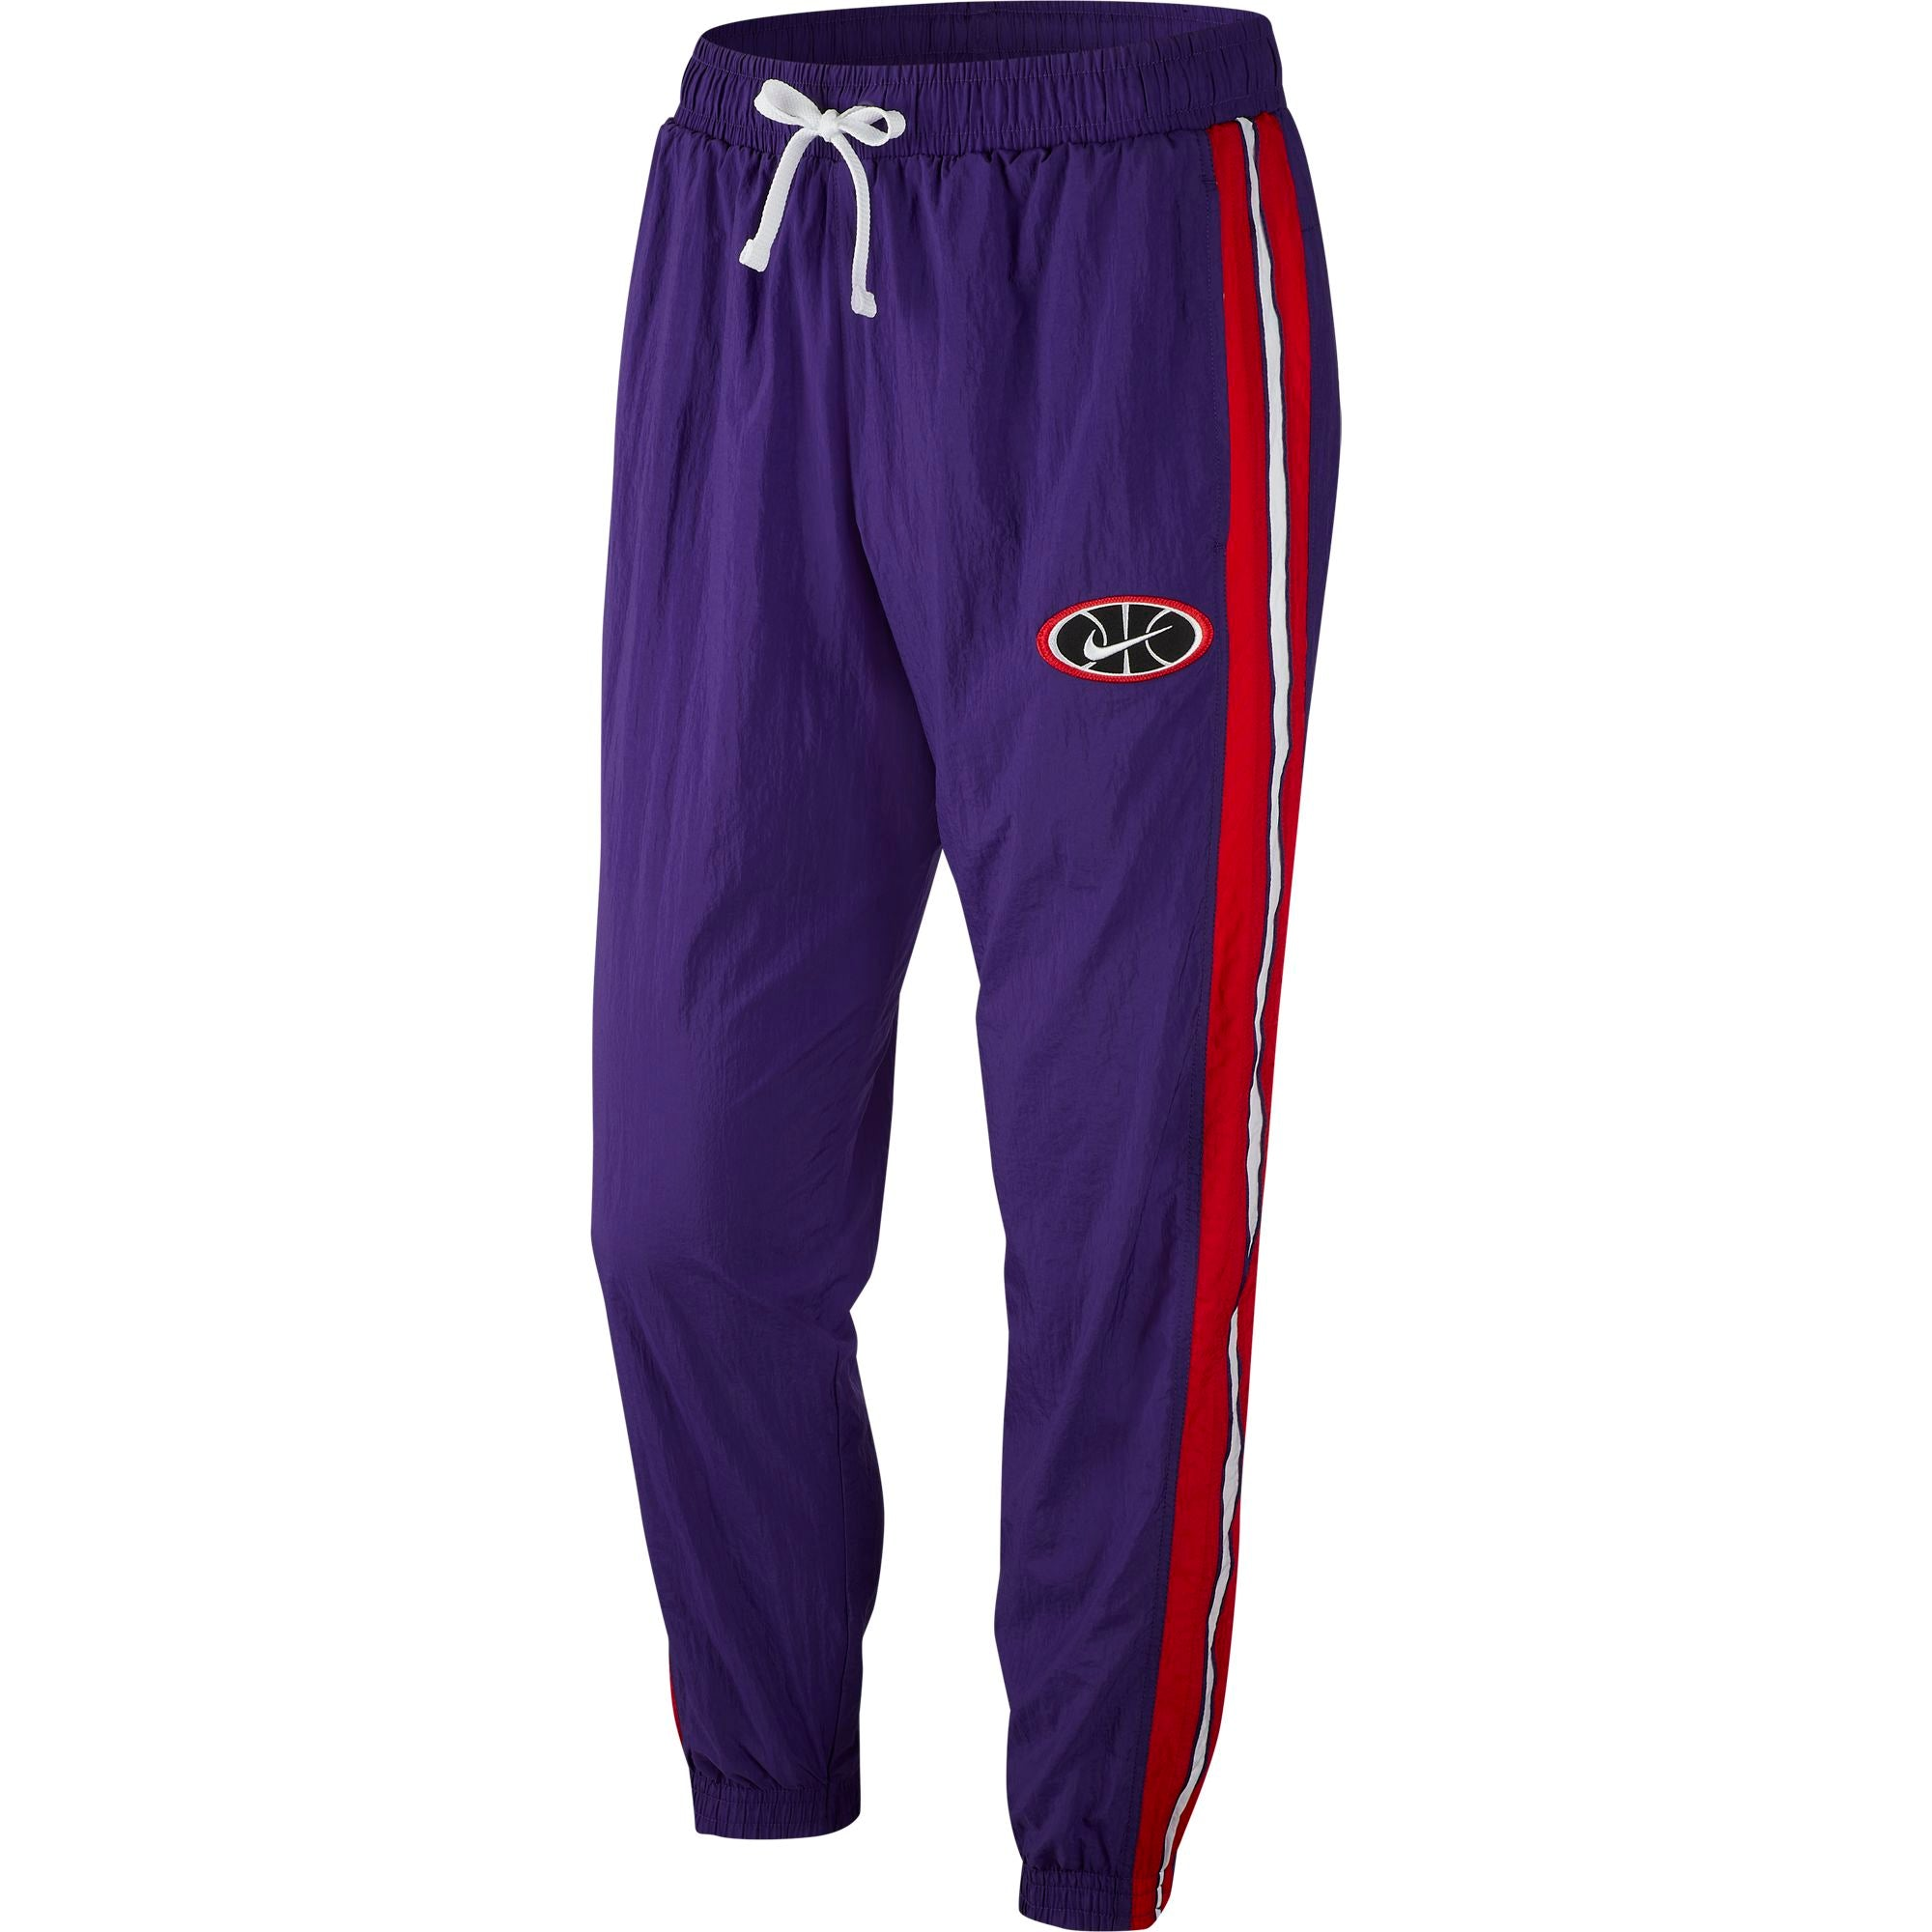 Nike Basketball Throwback Woven Pants - NK-AV9758-547